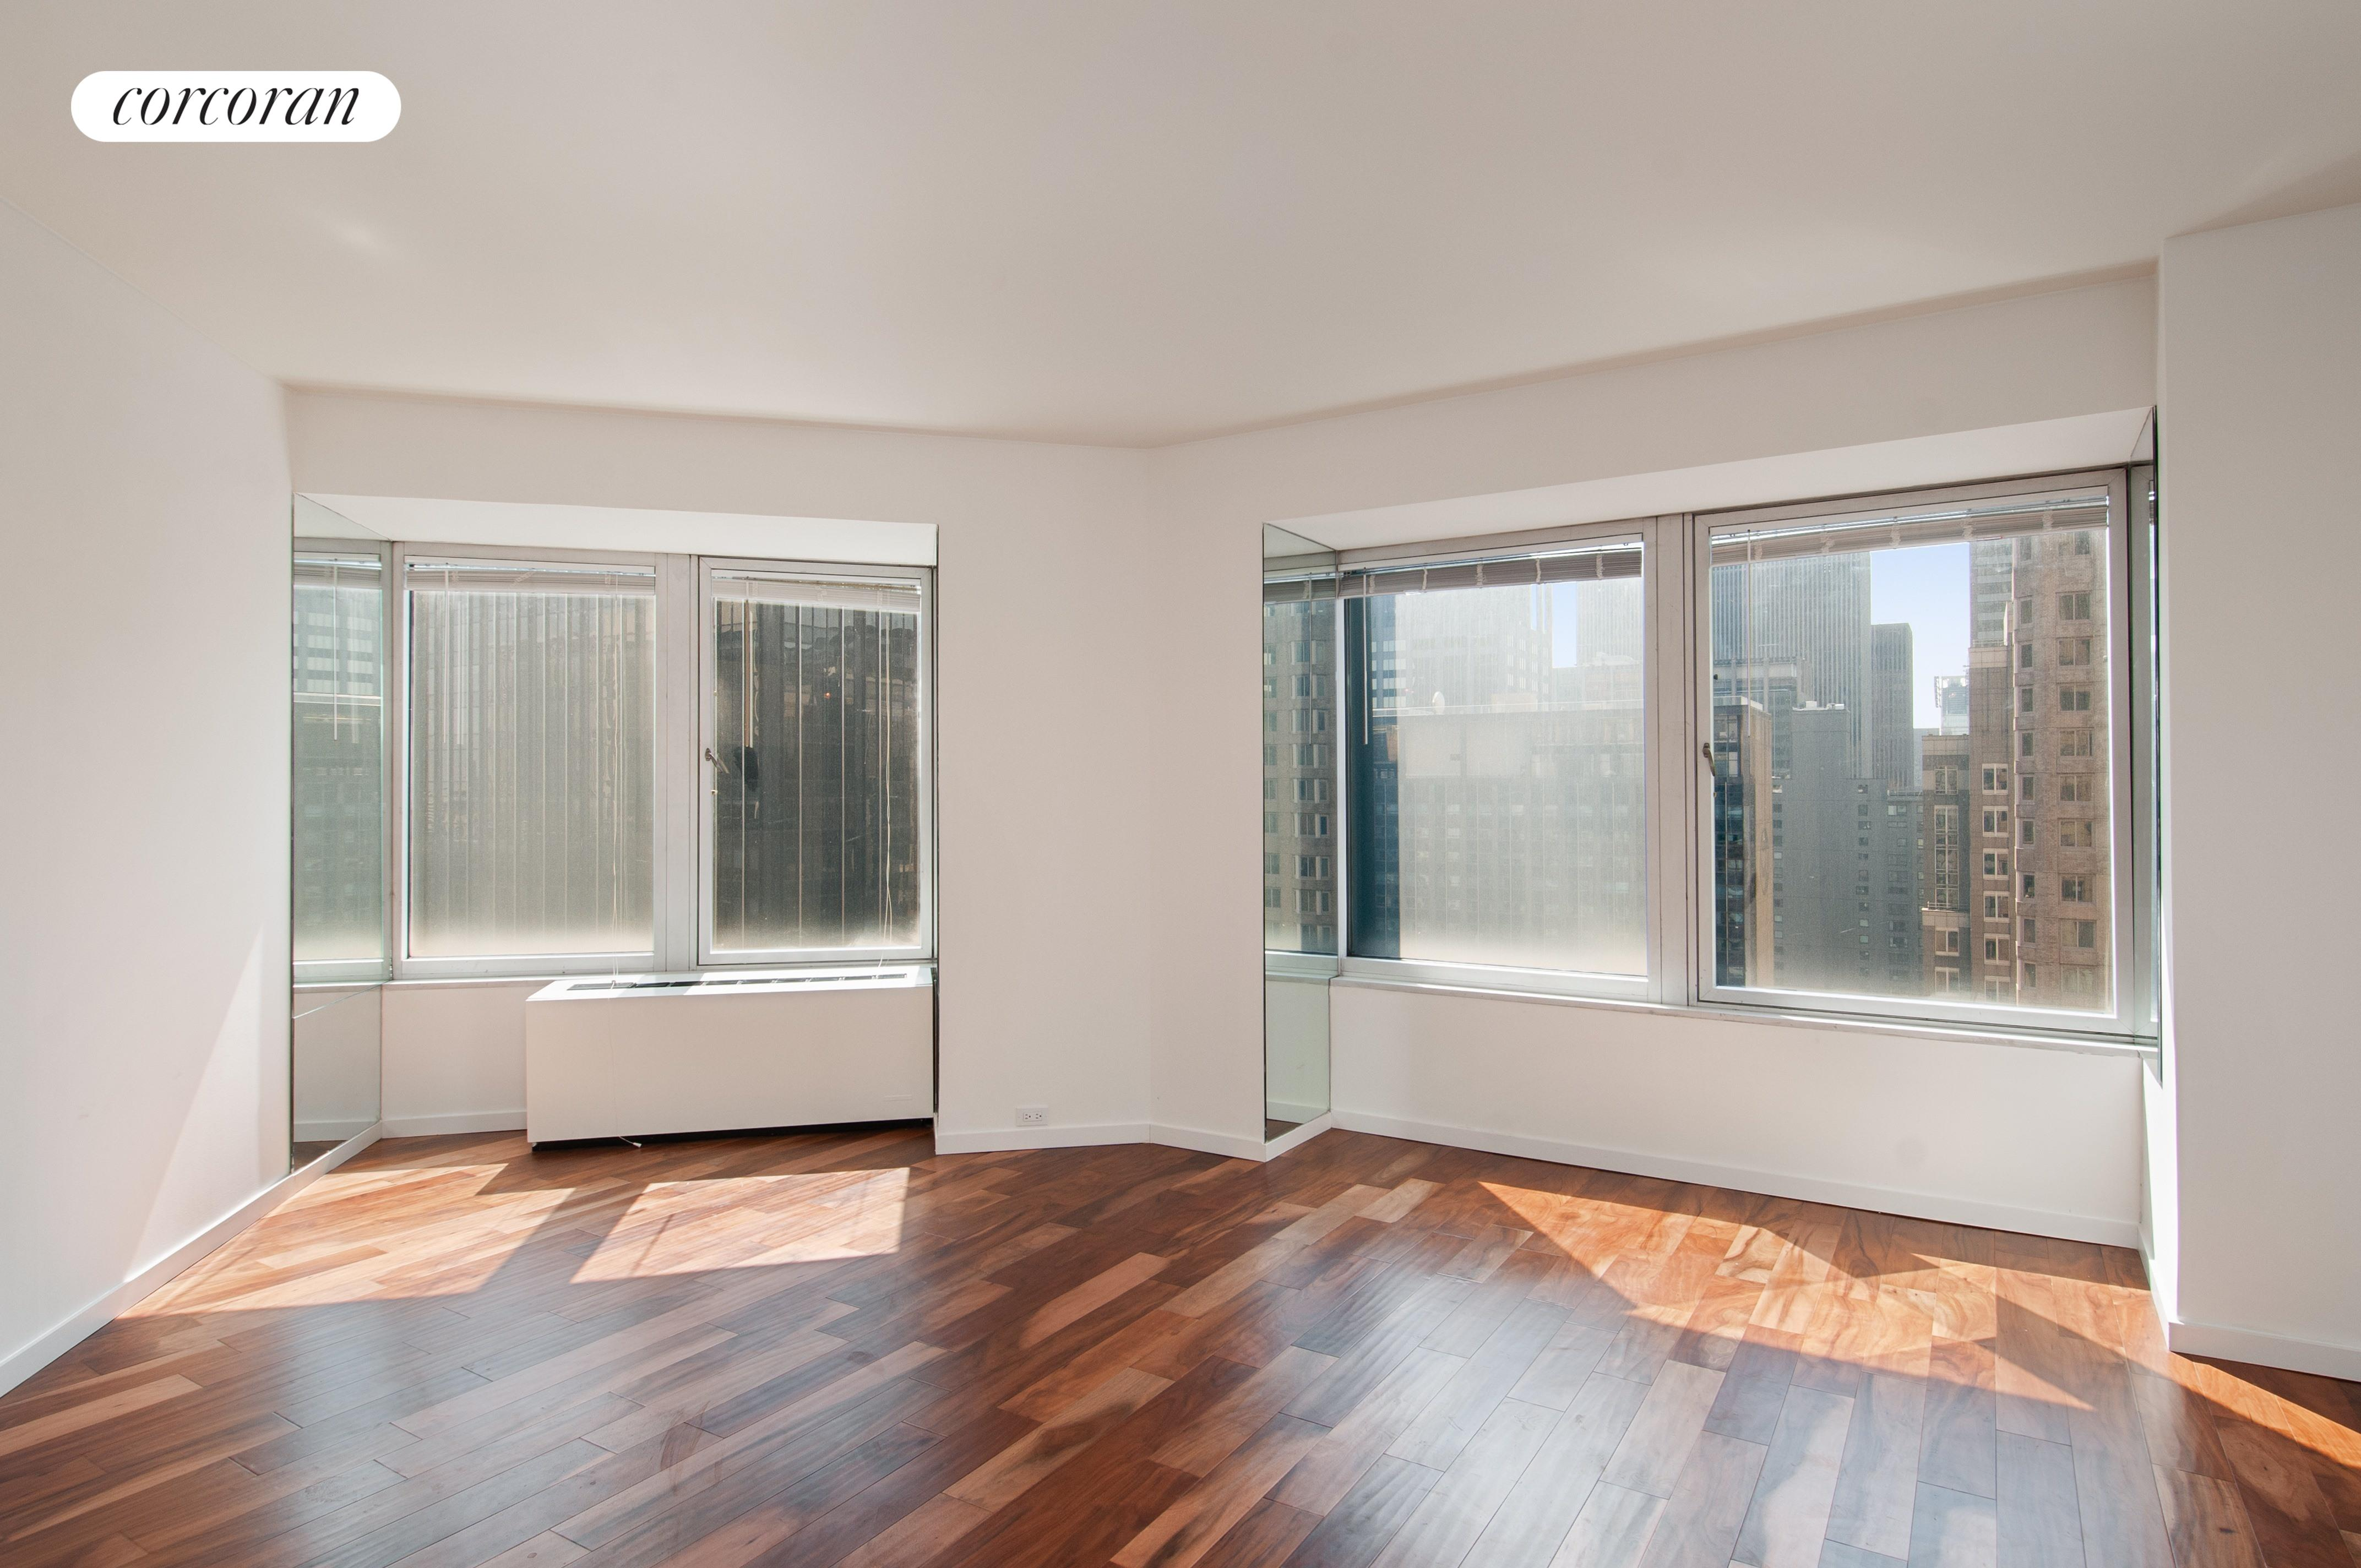 Application on.  No longer available. Large one bedroom with one and half bathrooms just came on the market.  Located In heart  of Manhattan, South of Central Park , the Cityspire is a White Glove  Luxury condominium with 24 hour doorman /concierge. gym, swimming pool, meeting room and garage.  This unit has a brand new hard-wood floor,  new appliances, open city and partial river views and generous closet space. Landry room on each floor.   Fine Dinning, Shopping and public transportation are all near by.   Corporations, diplomats and pied--terre are welcome.  Sorry no pets. Be the first one to see..